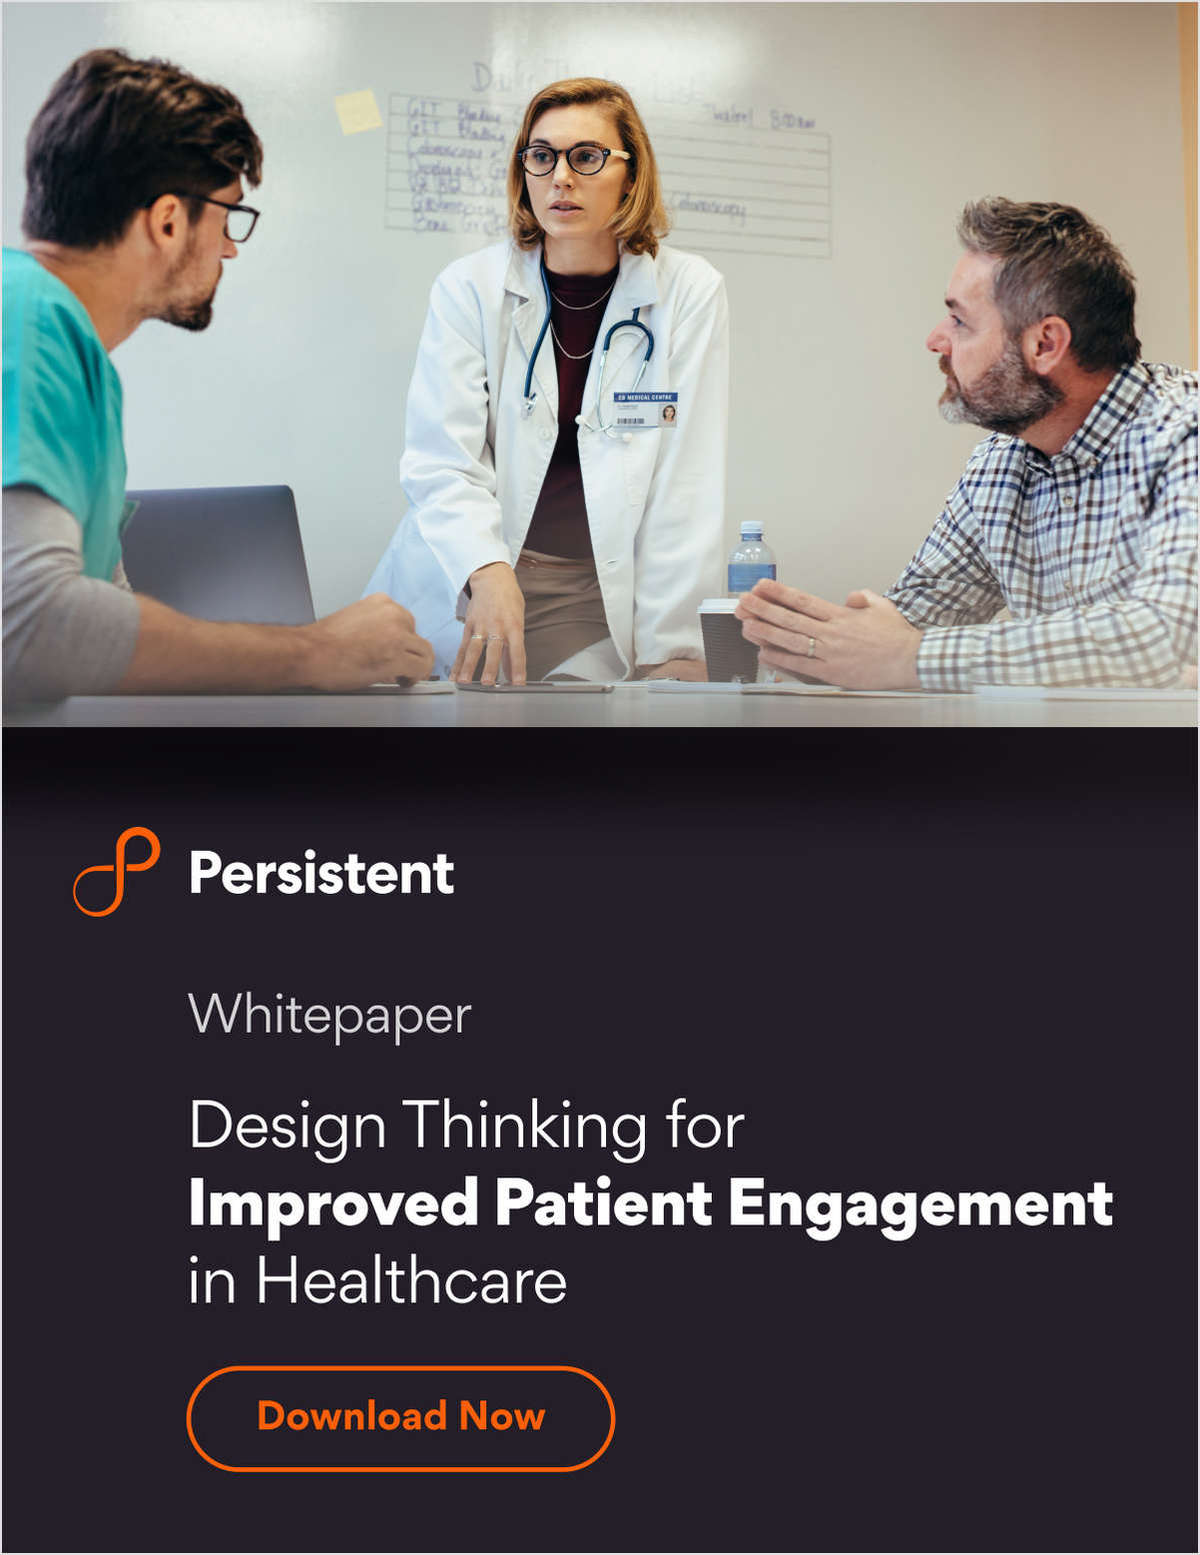 Design Thinking for Improved Patient Engagement in Healthcare Sector